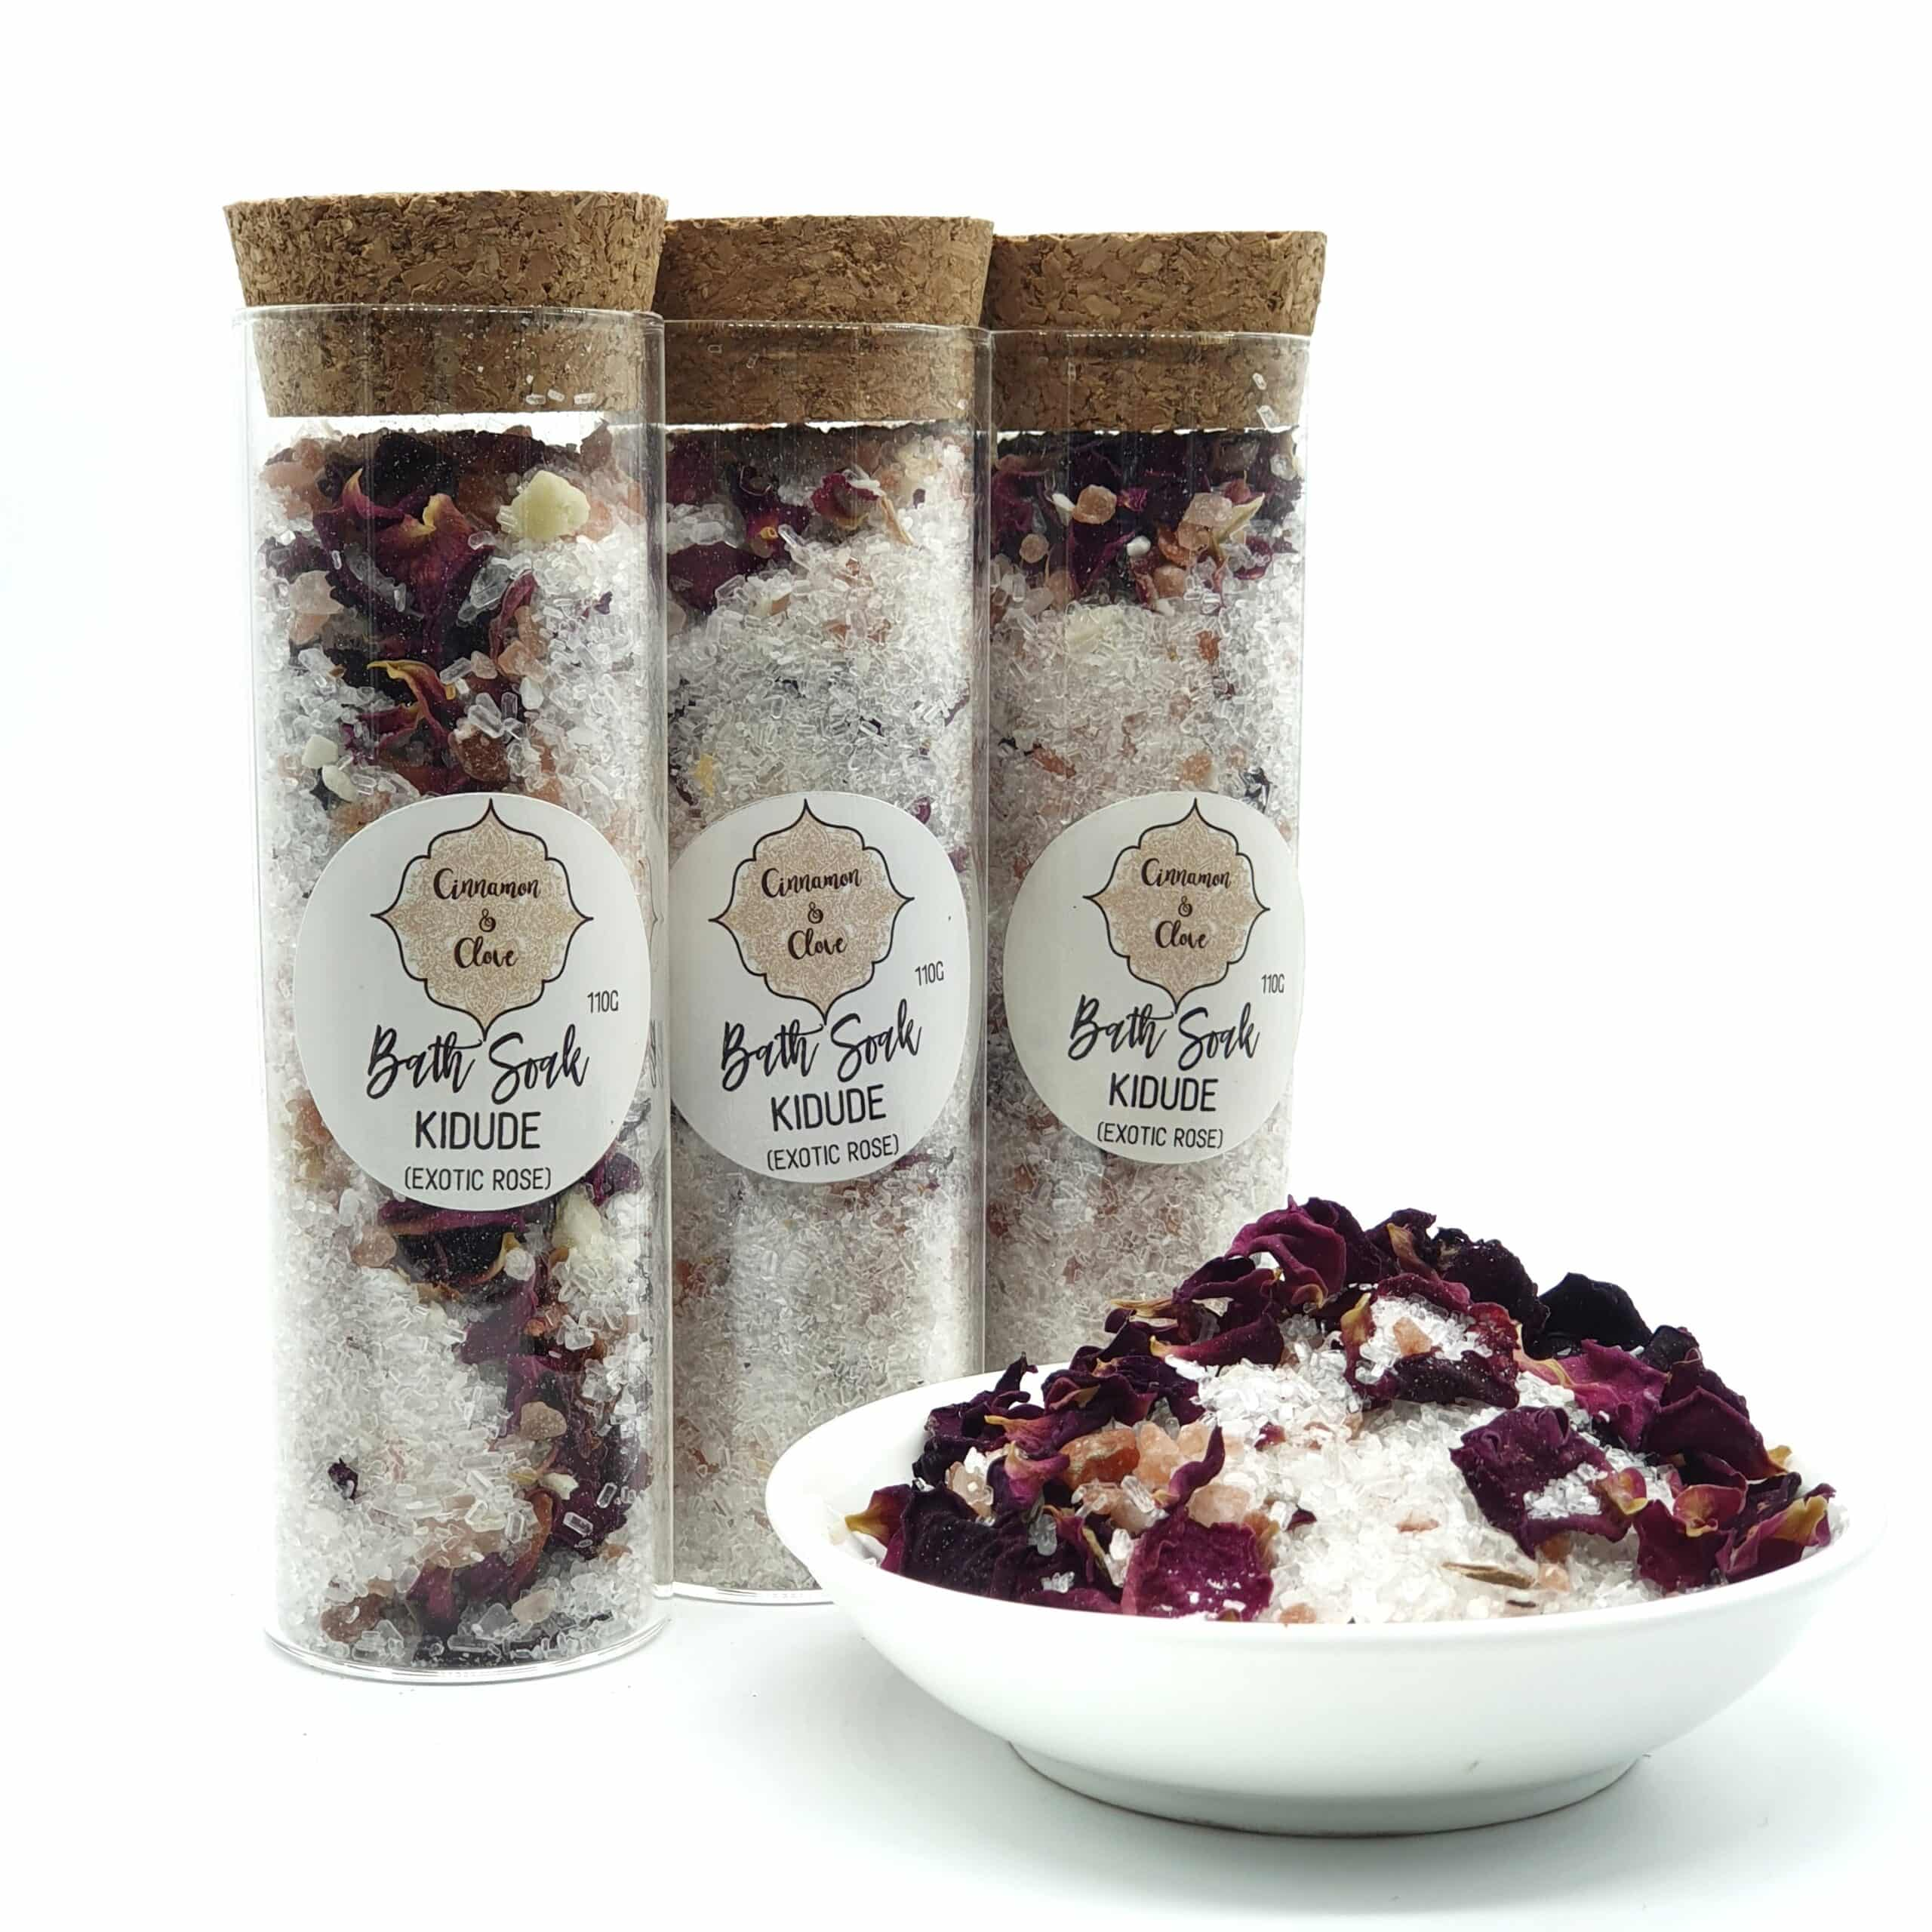 Luxurious Bath Soak With Cacao Butter And Essential Oils – Kidude (Exotic Rose) By Cinnamon And Clove (Prahran)